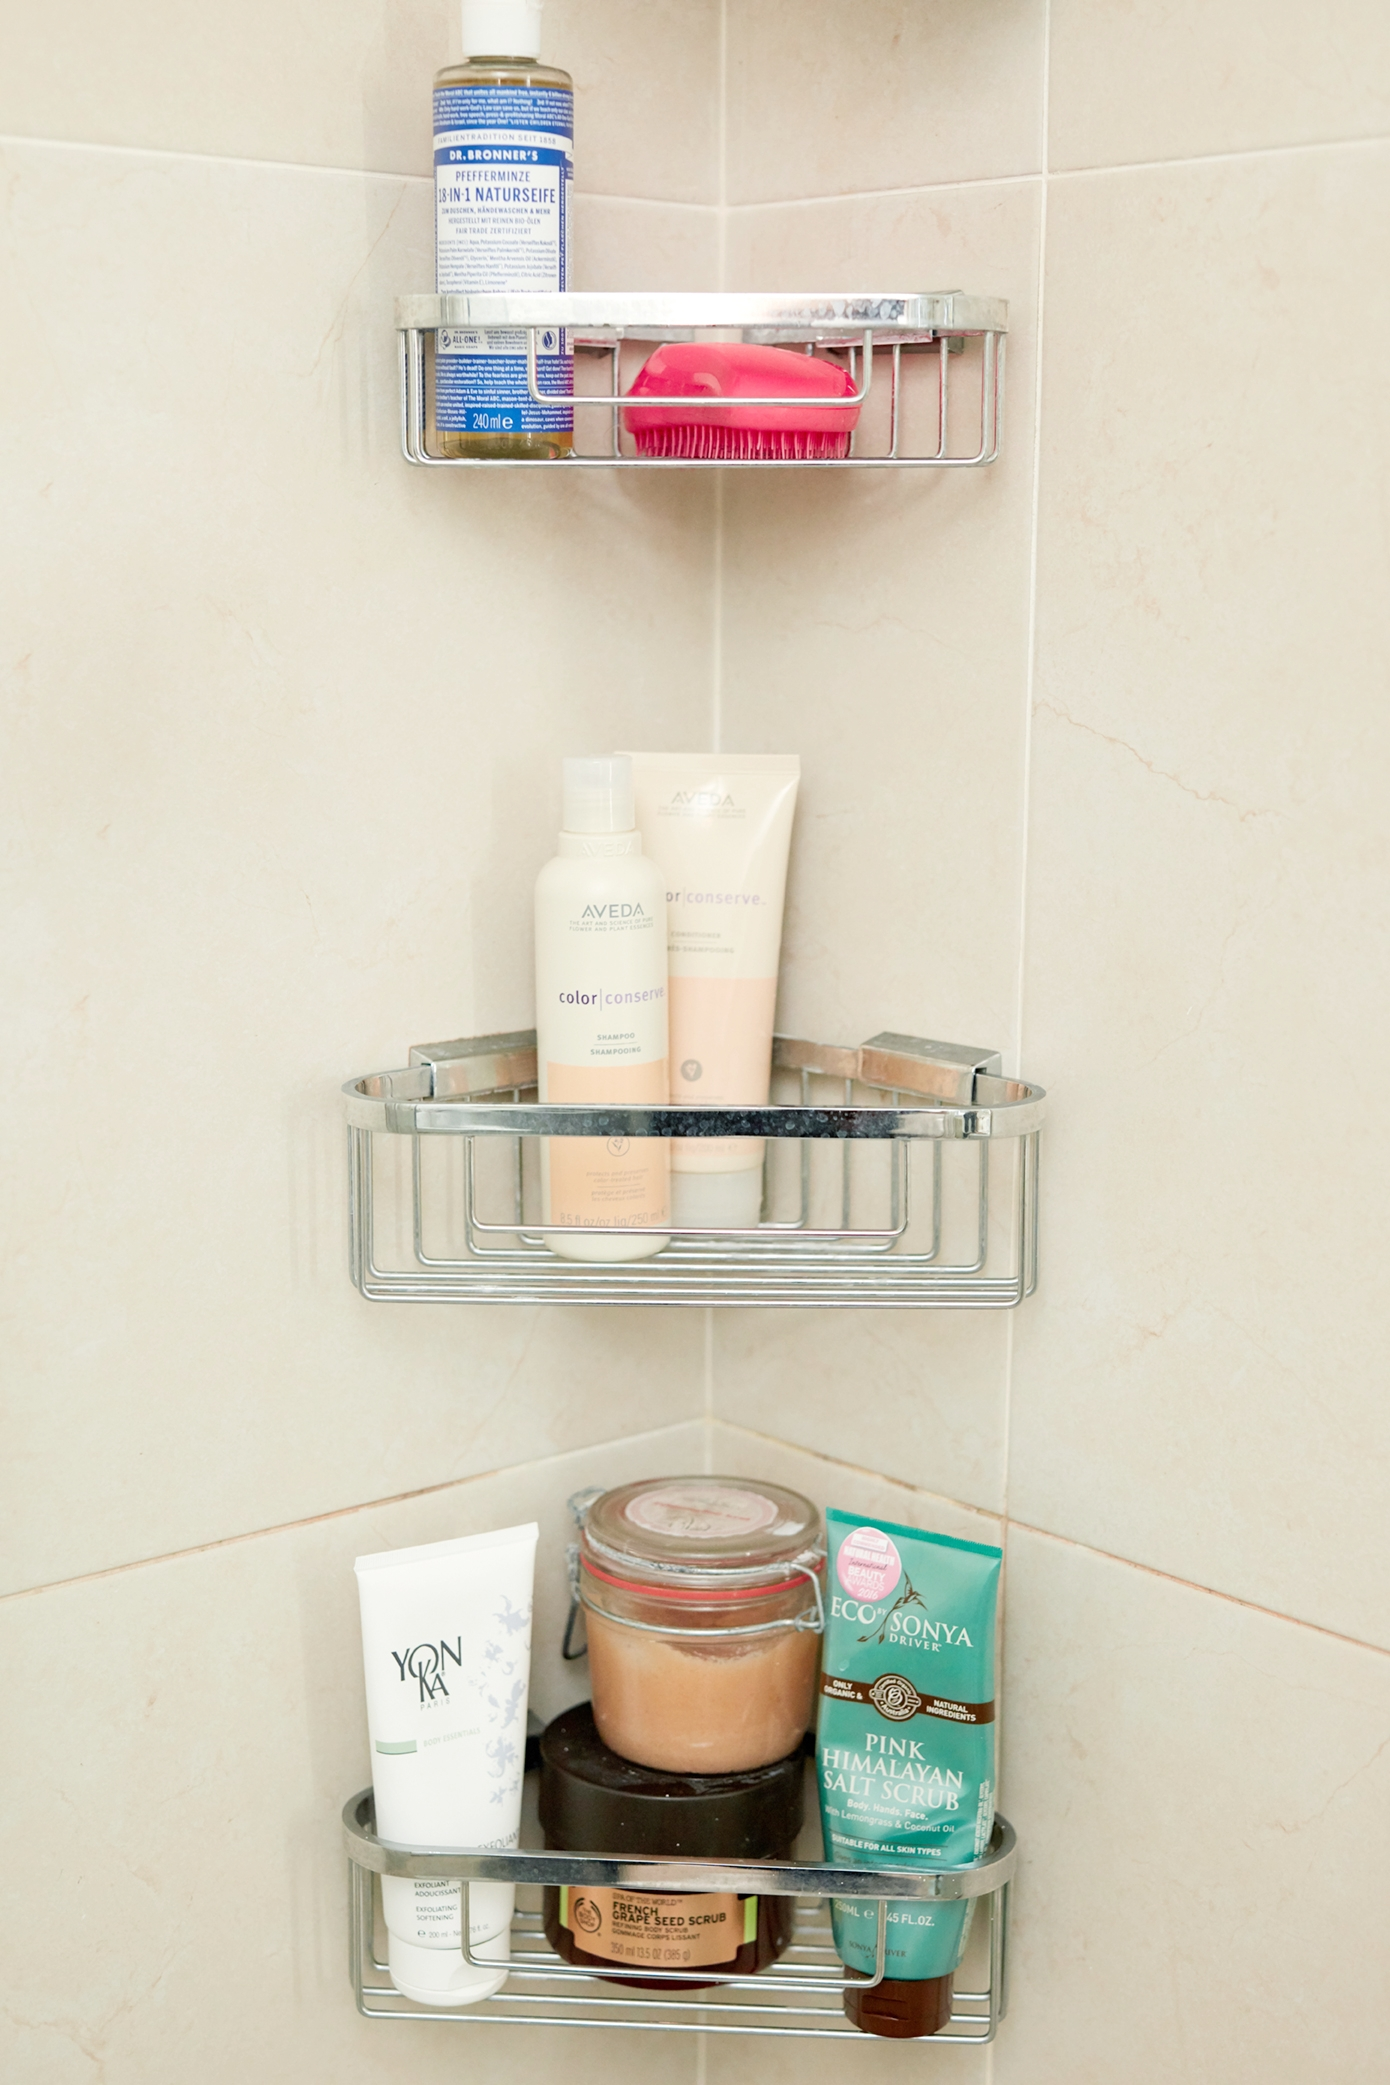 Shower products cruelty free